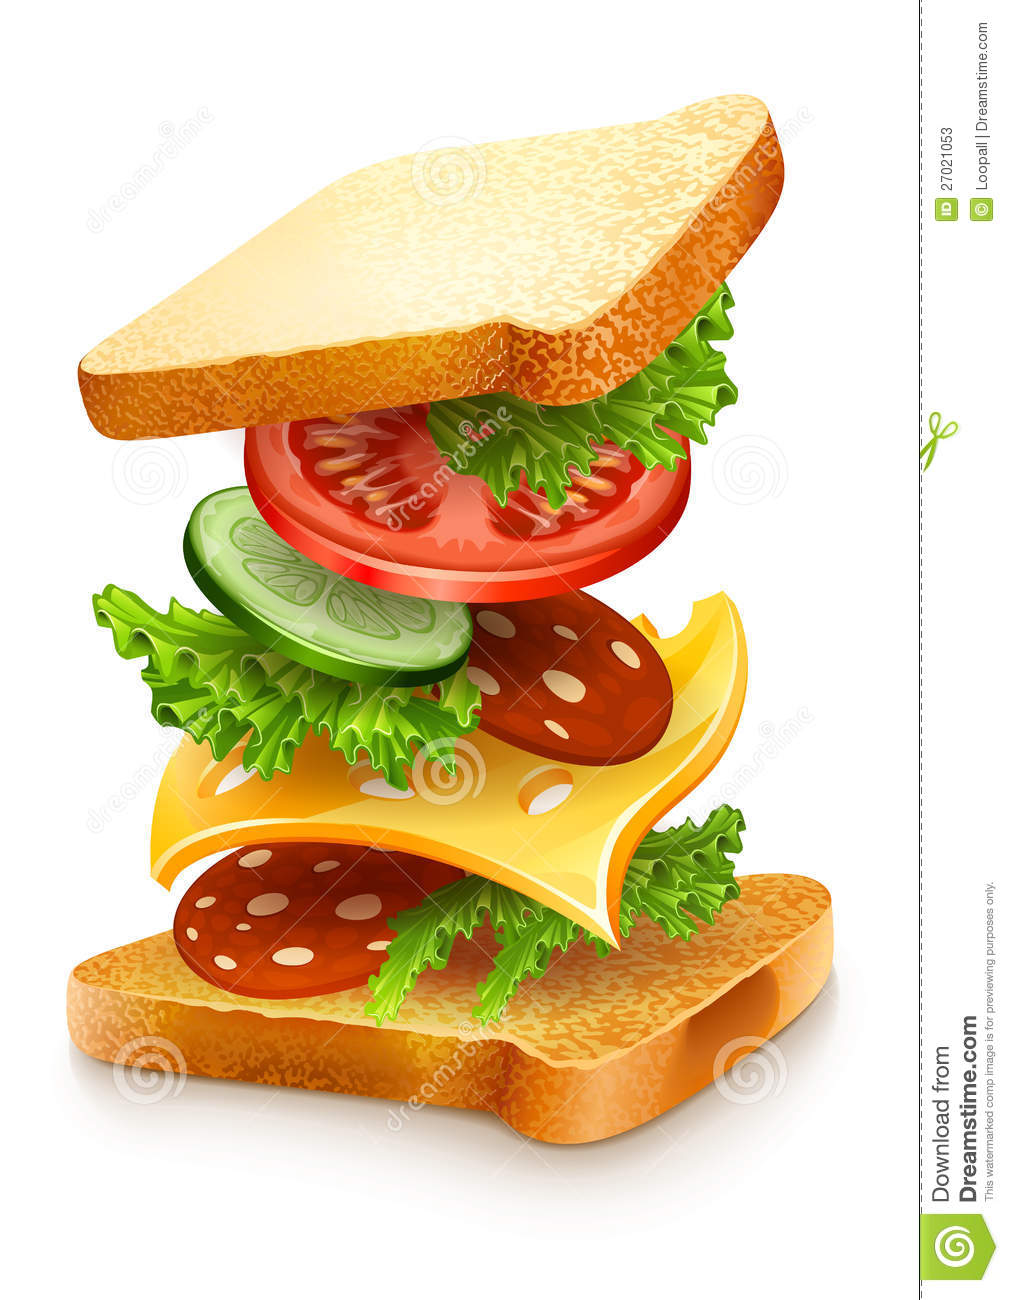 Exploded View Of Sandwich Ingredients Stock Illustration